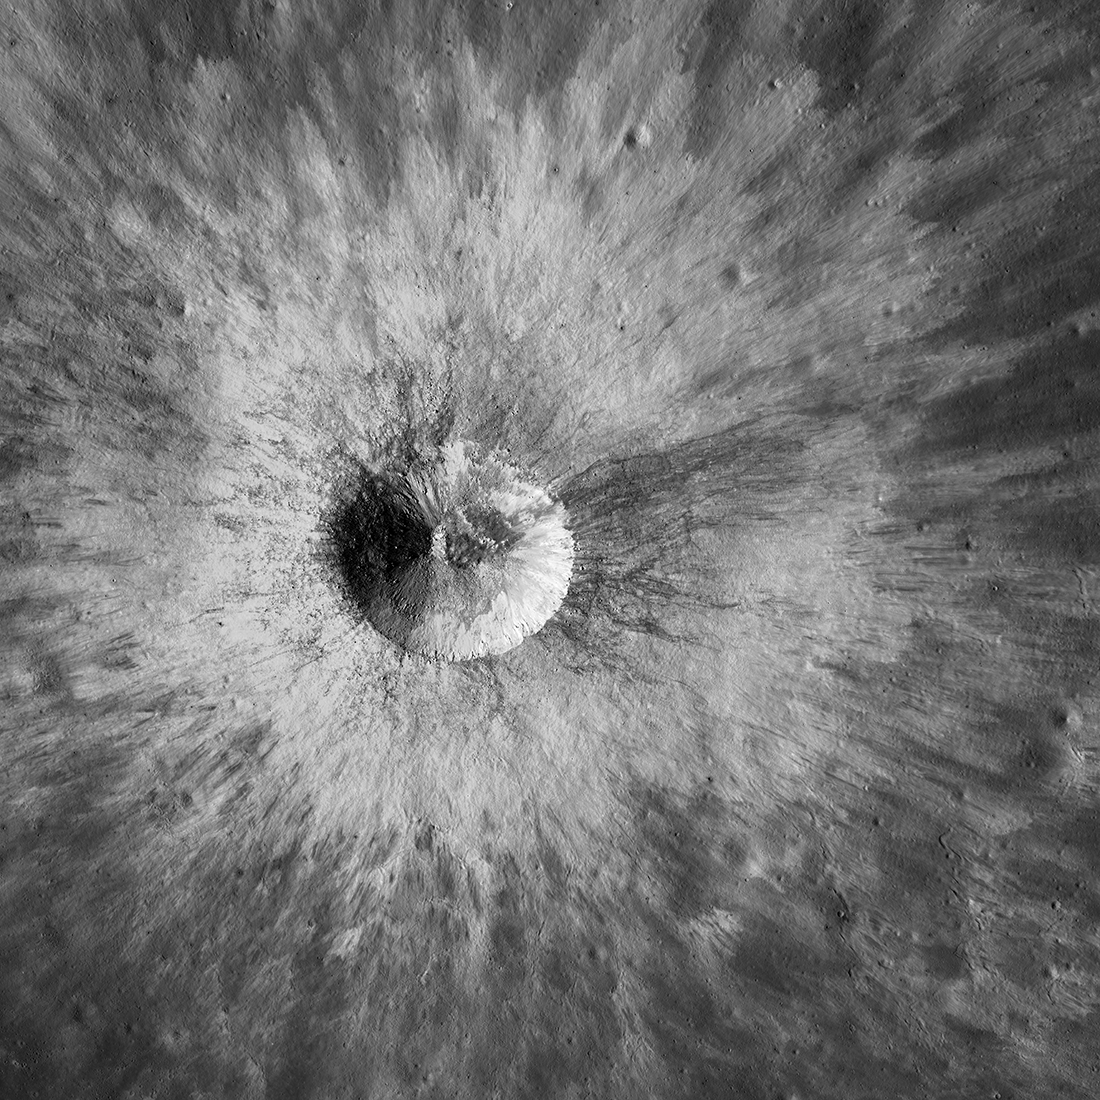 bright crater seen from directly above